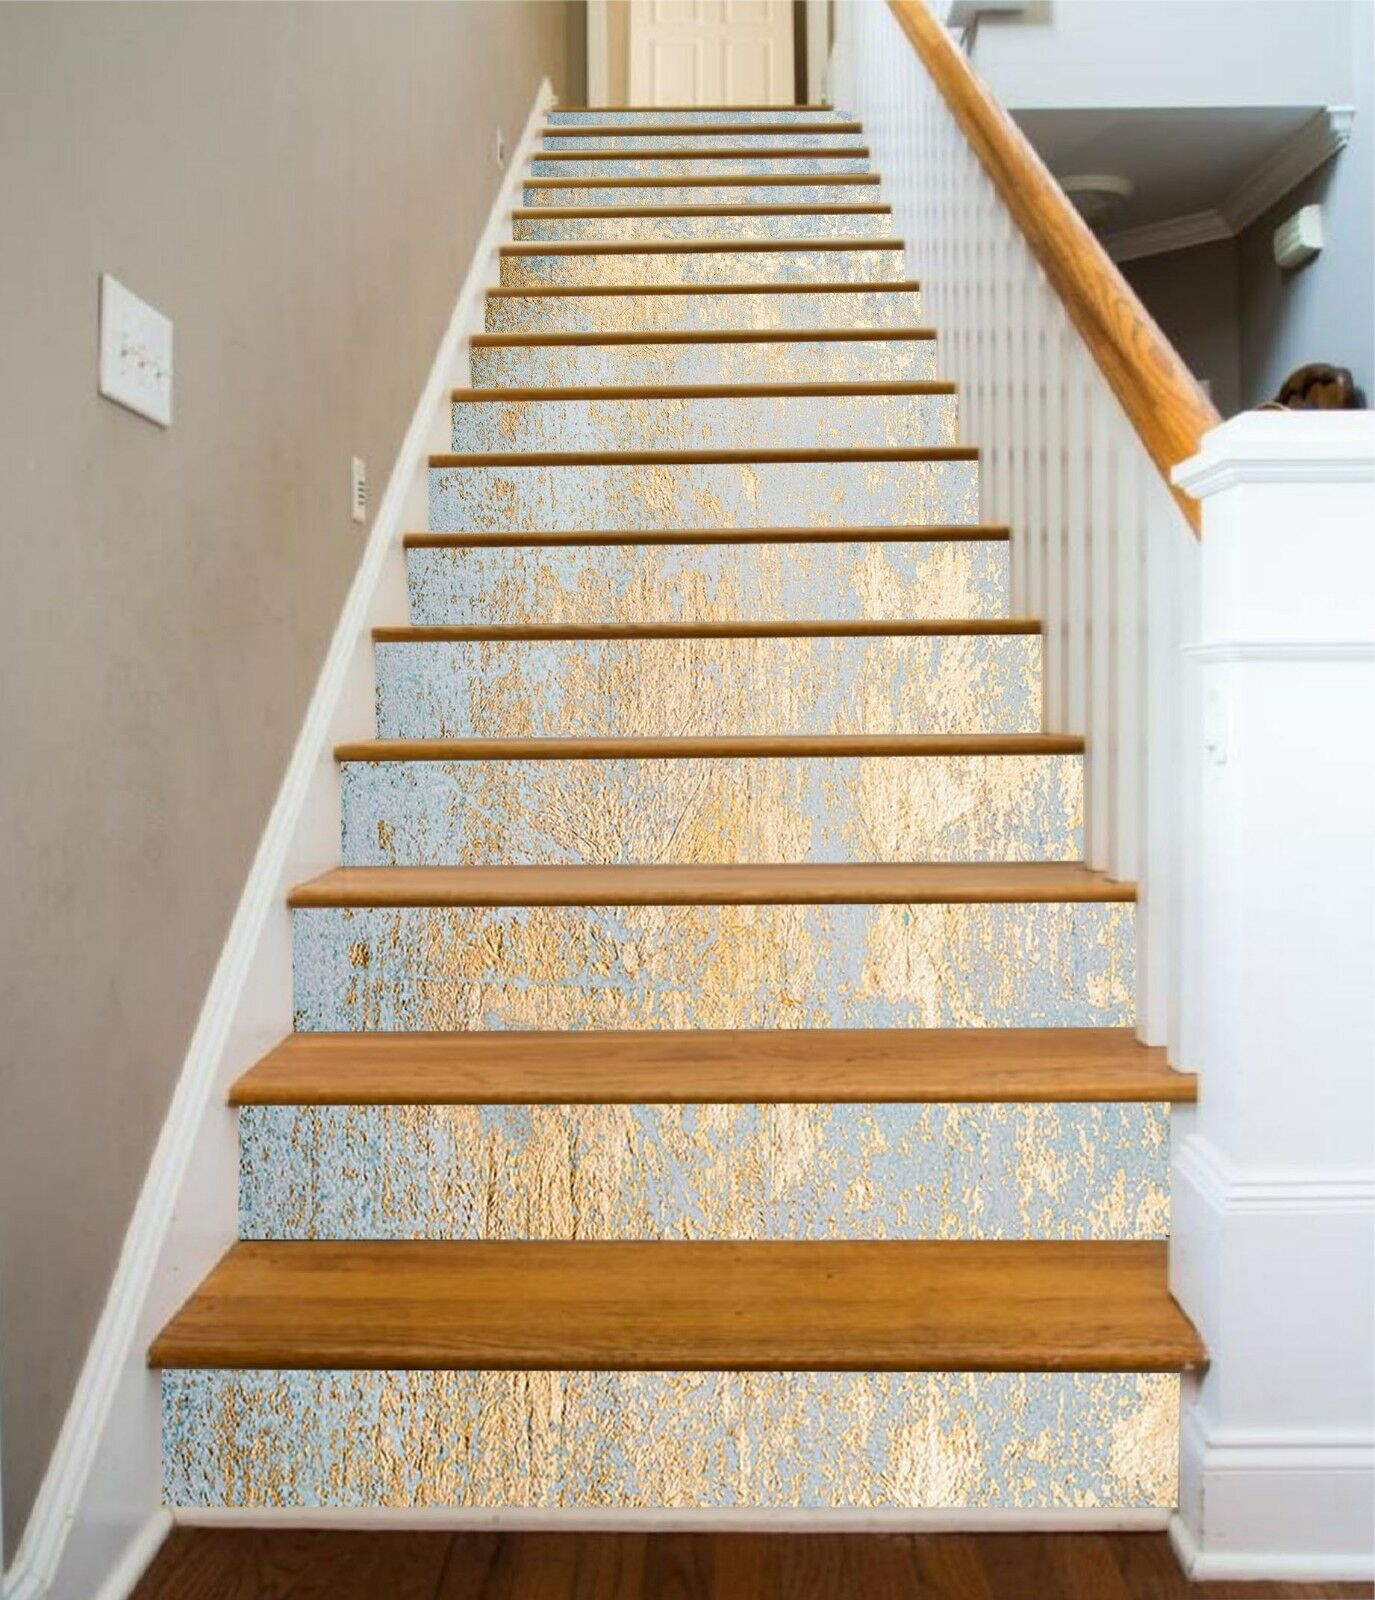 3D golden Abstract 7 Tile Marble Stair Risers Photo Mural Vinyl Decal Wallpaper